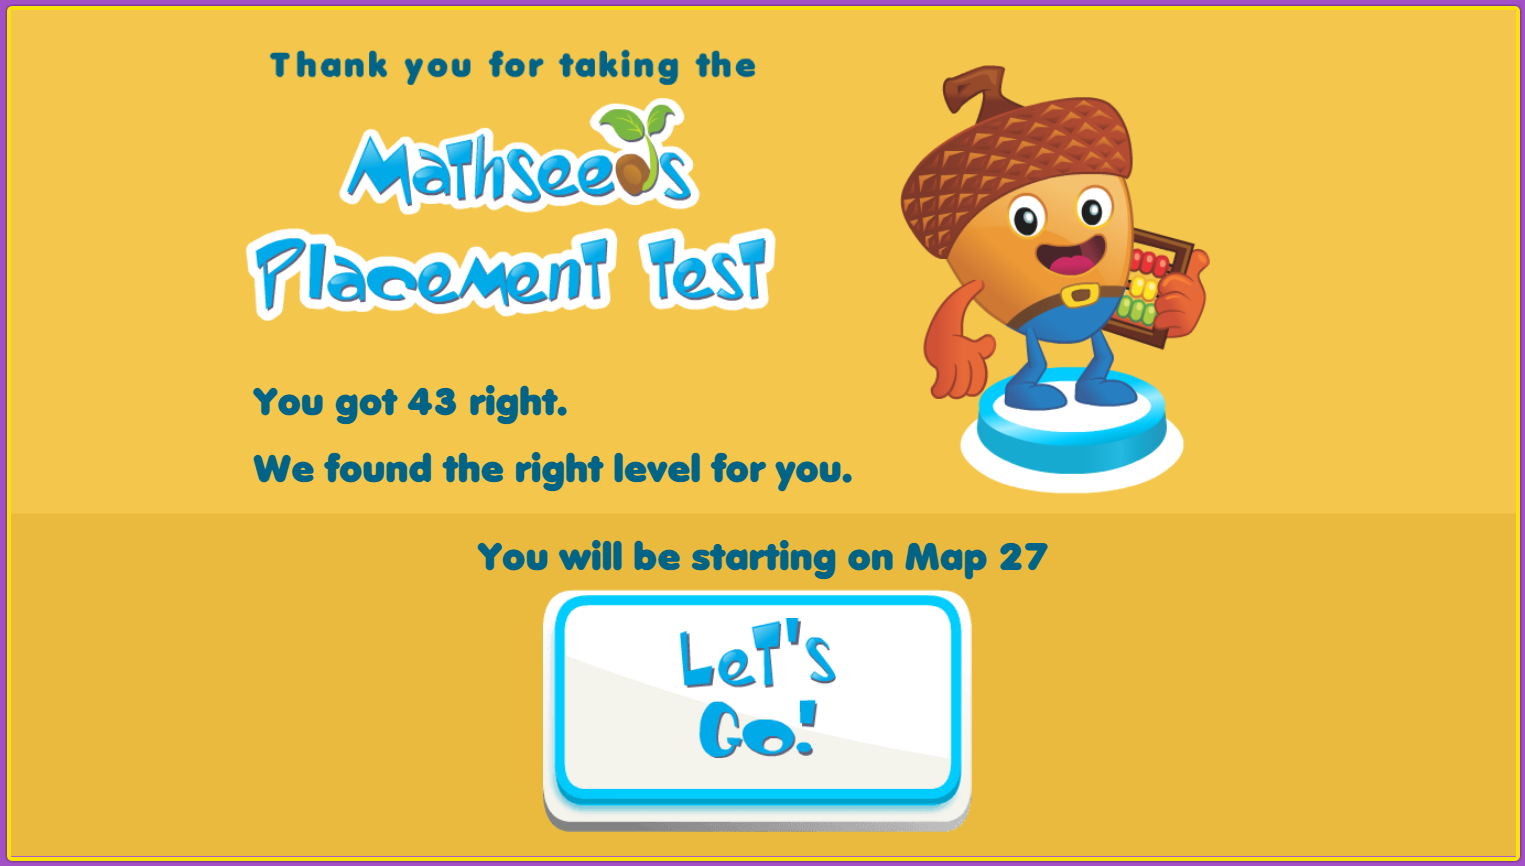 Mathseeds driving test screenshot